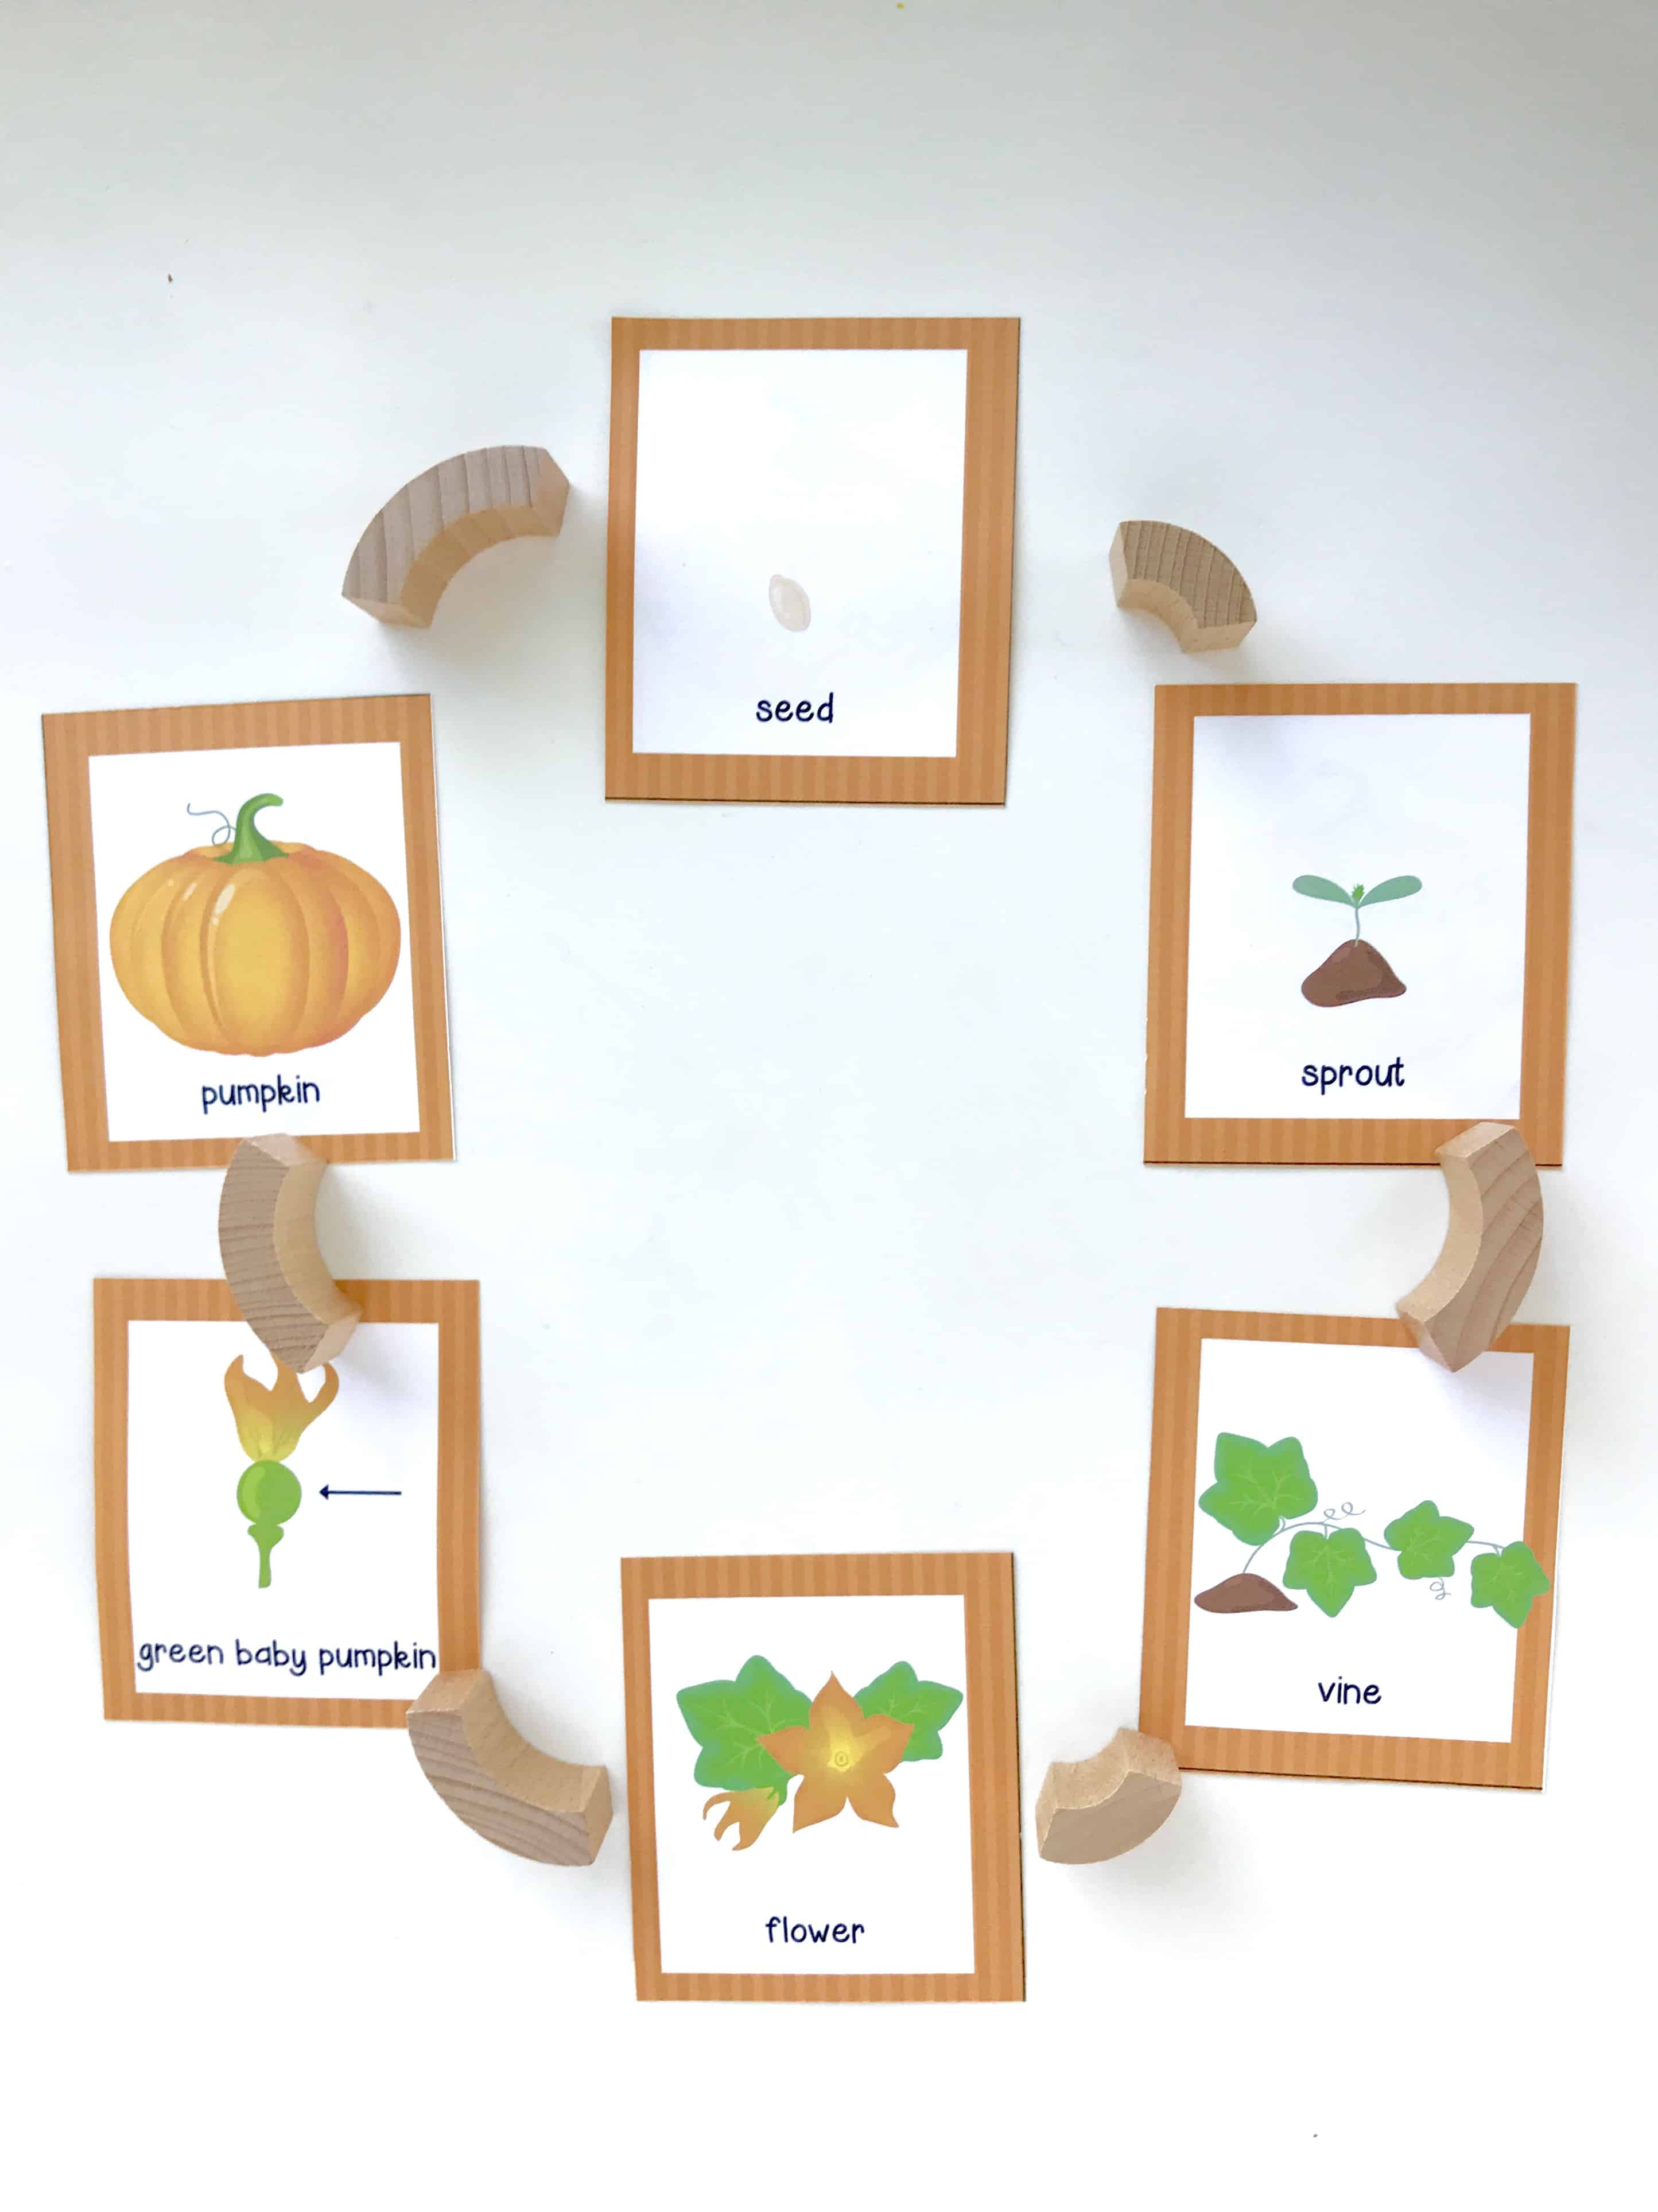 graphic relating to Pumpkin Life Cycle Printable referred to as Pumpkin Existence Cycle Printable Memory Sport - I Can Educate My Kid!